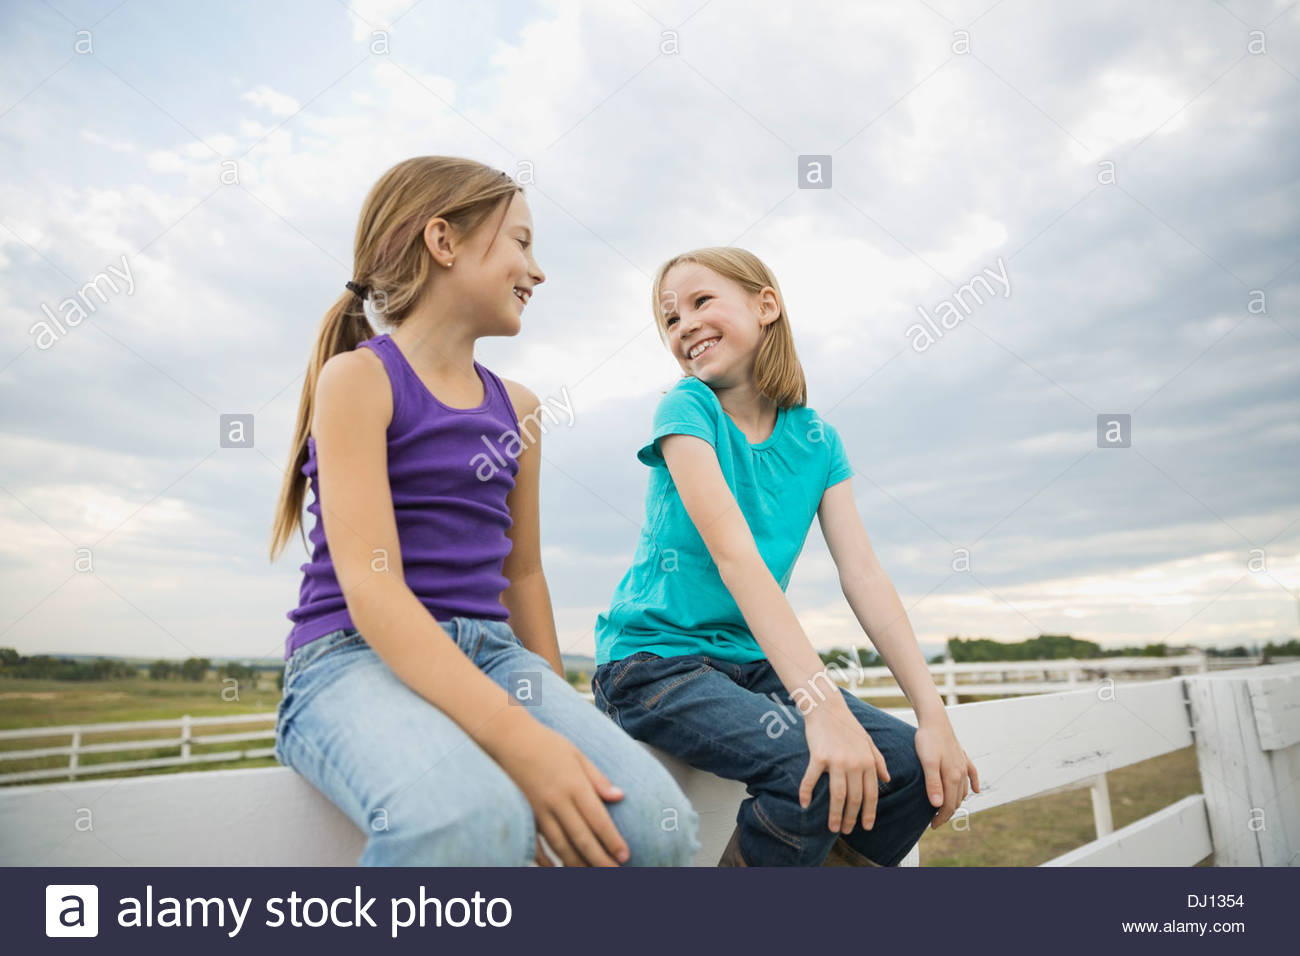 Smiling sisters sitting on railing looking at each other - Stock Image